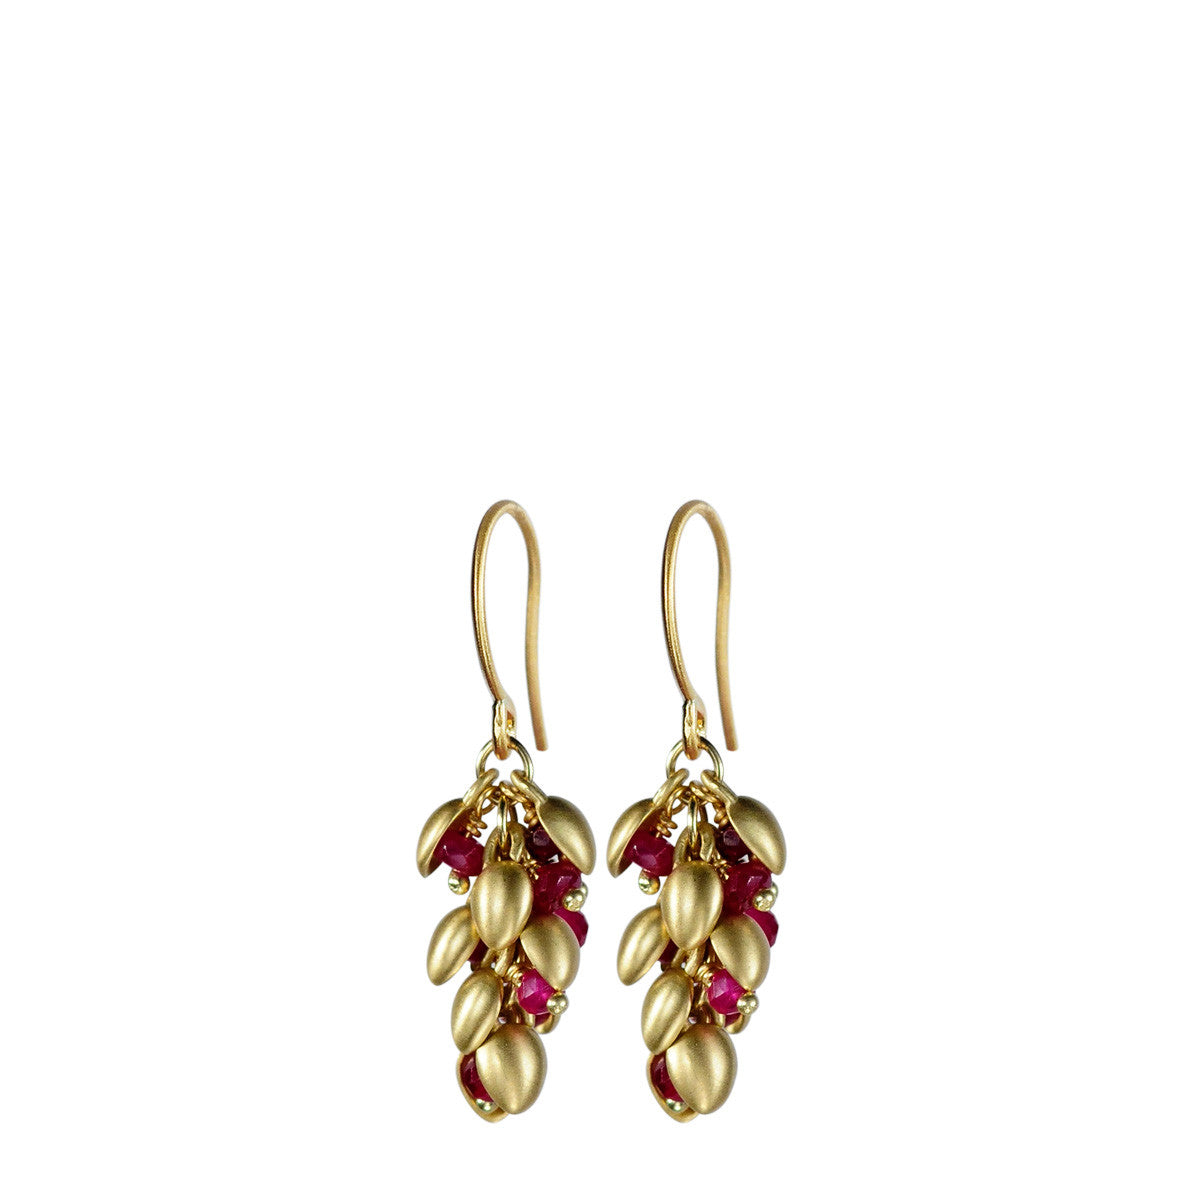 18K Gold Short Baby Pod Earrings with Rubies